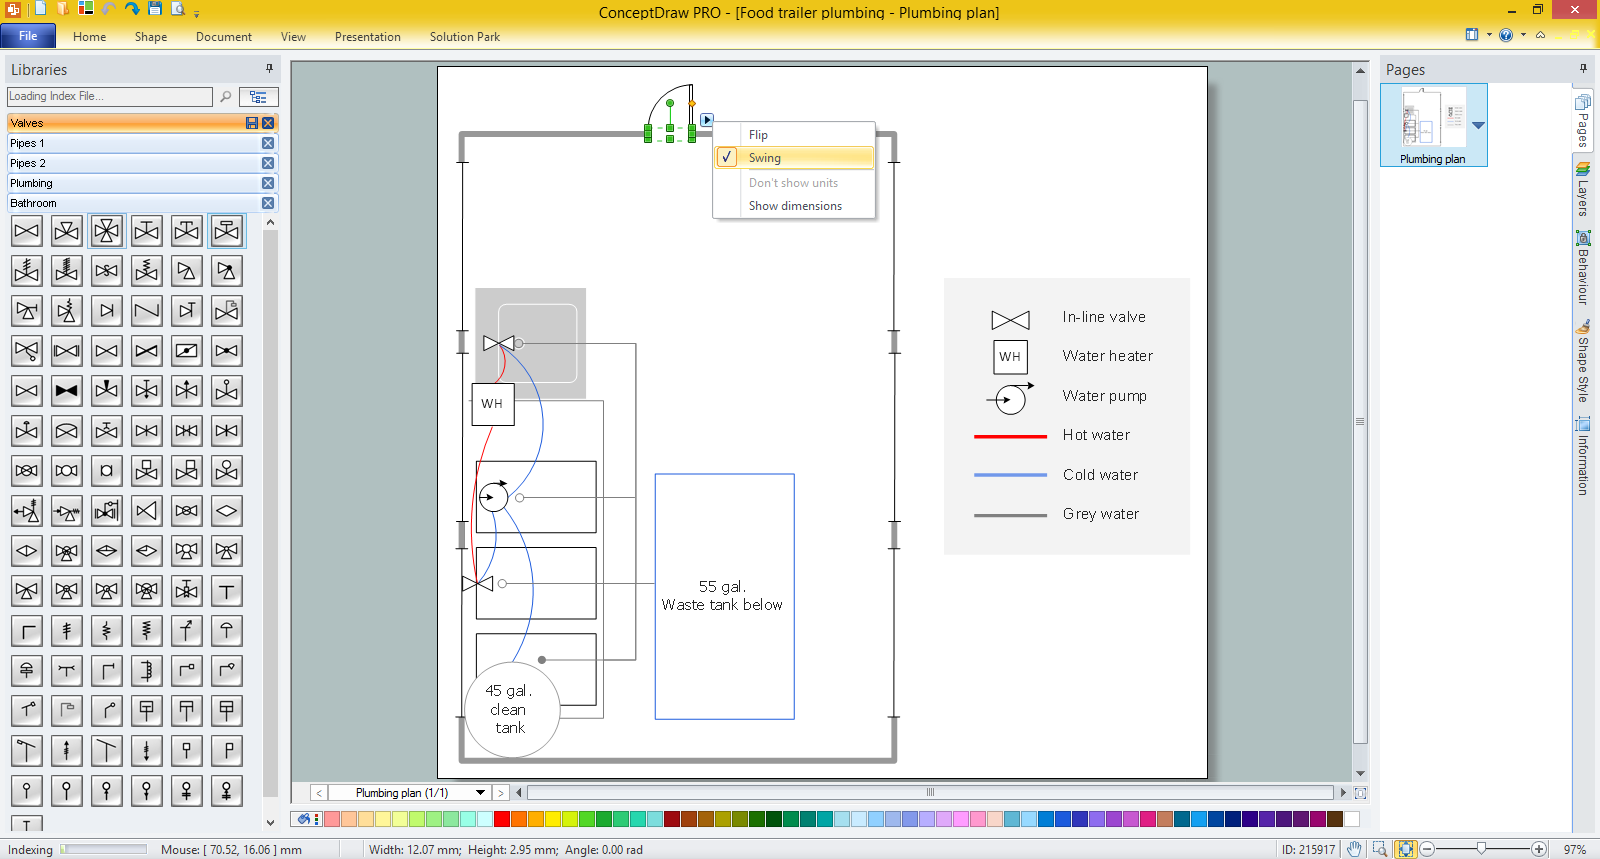 Piping and Instrumentation Diagram Software